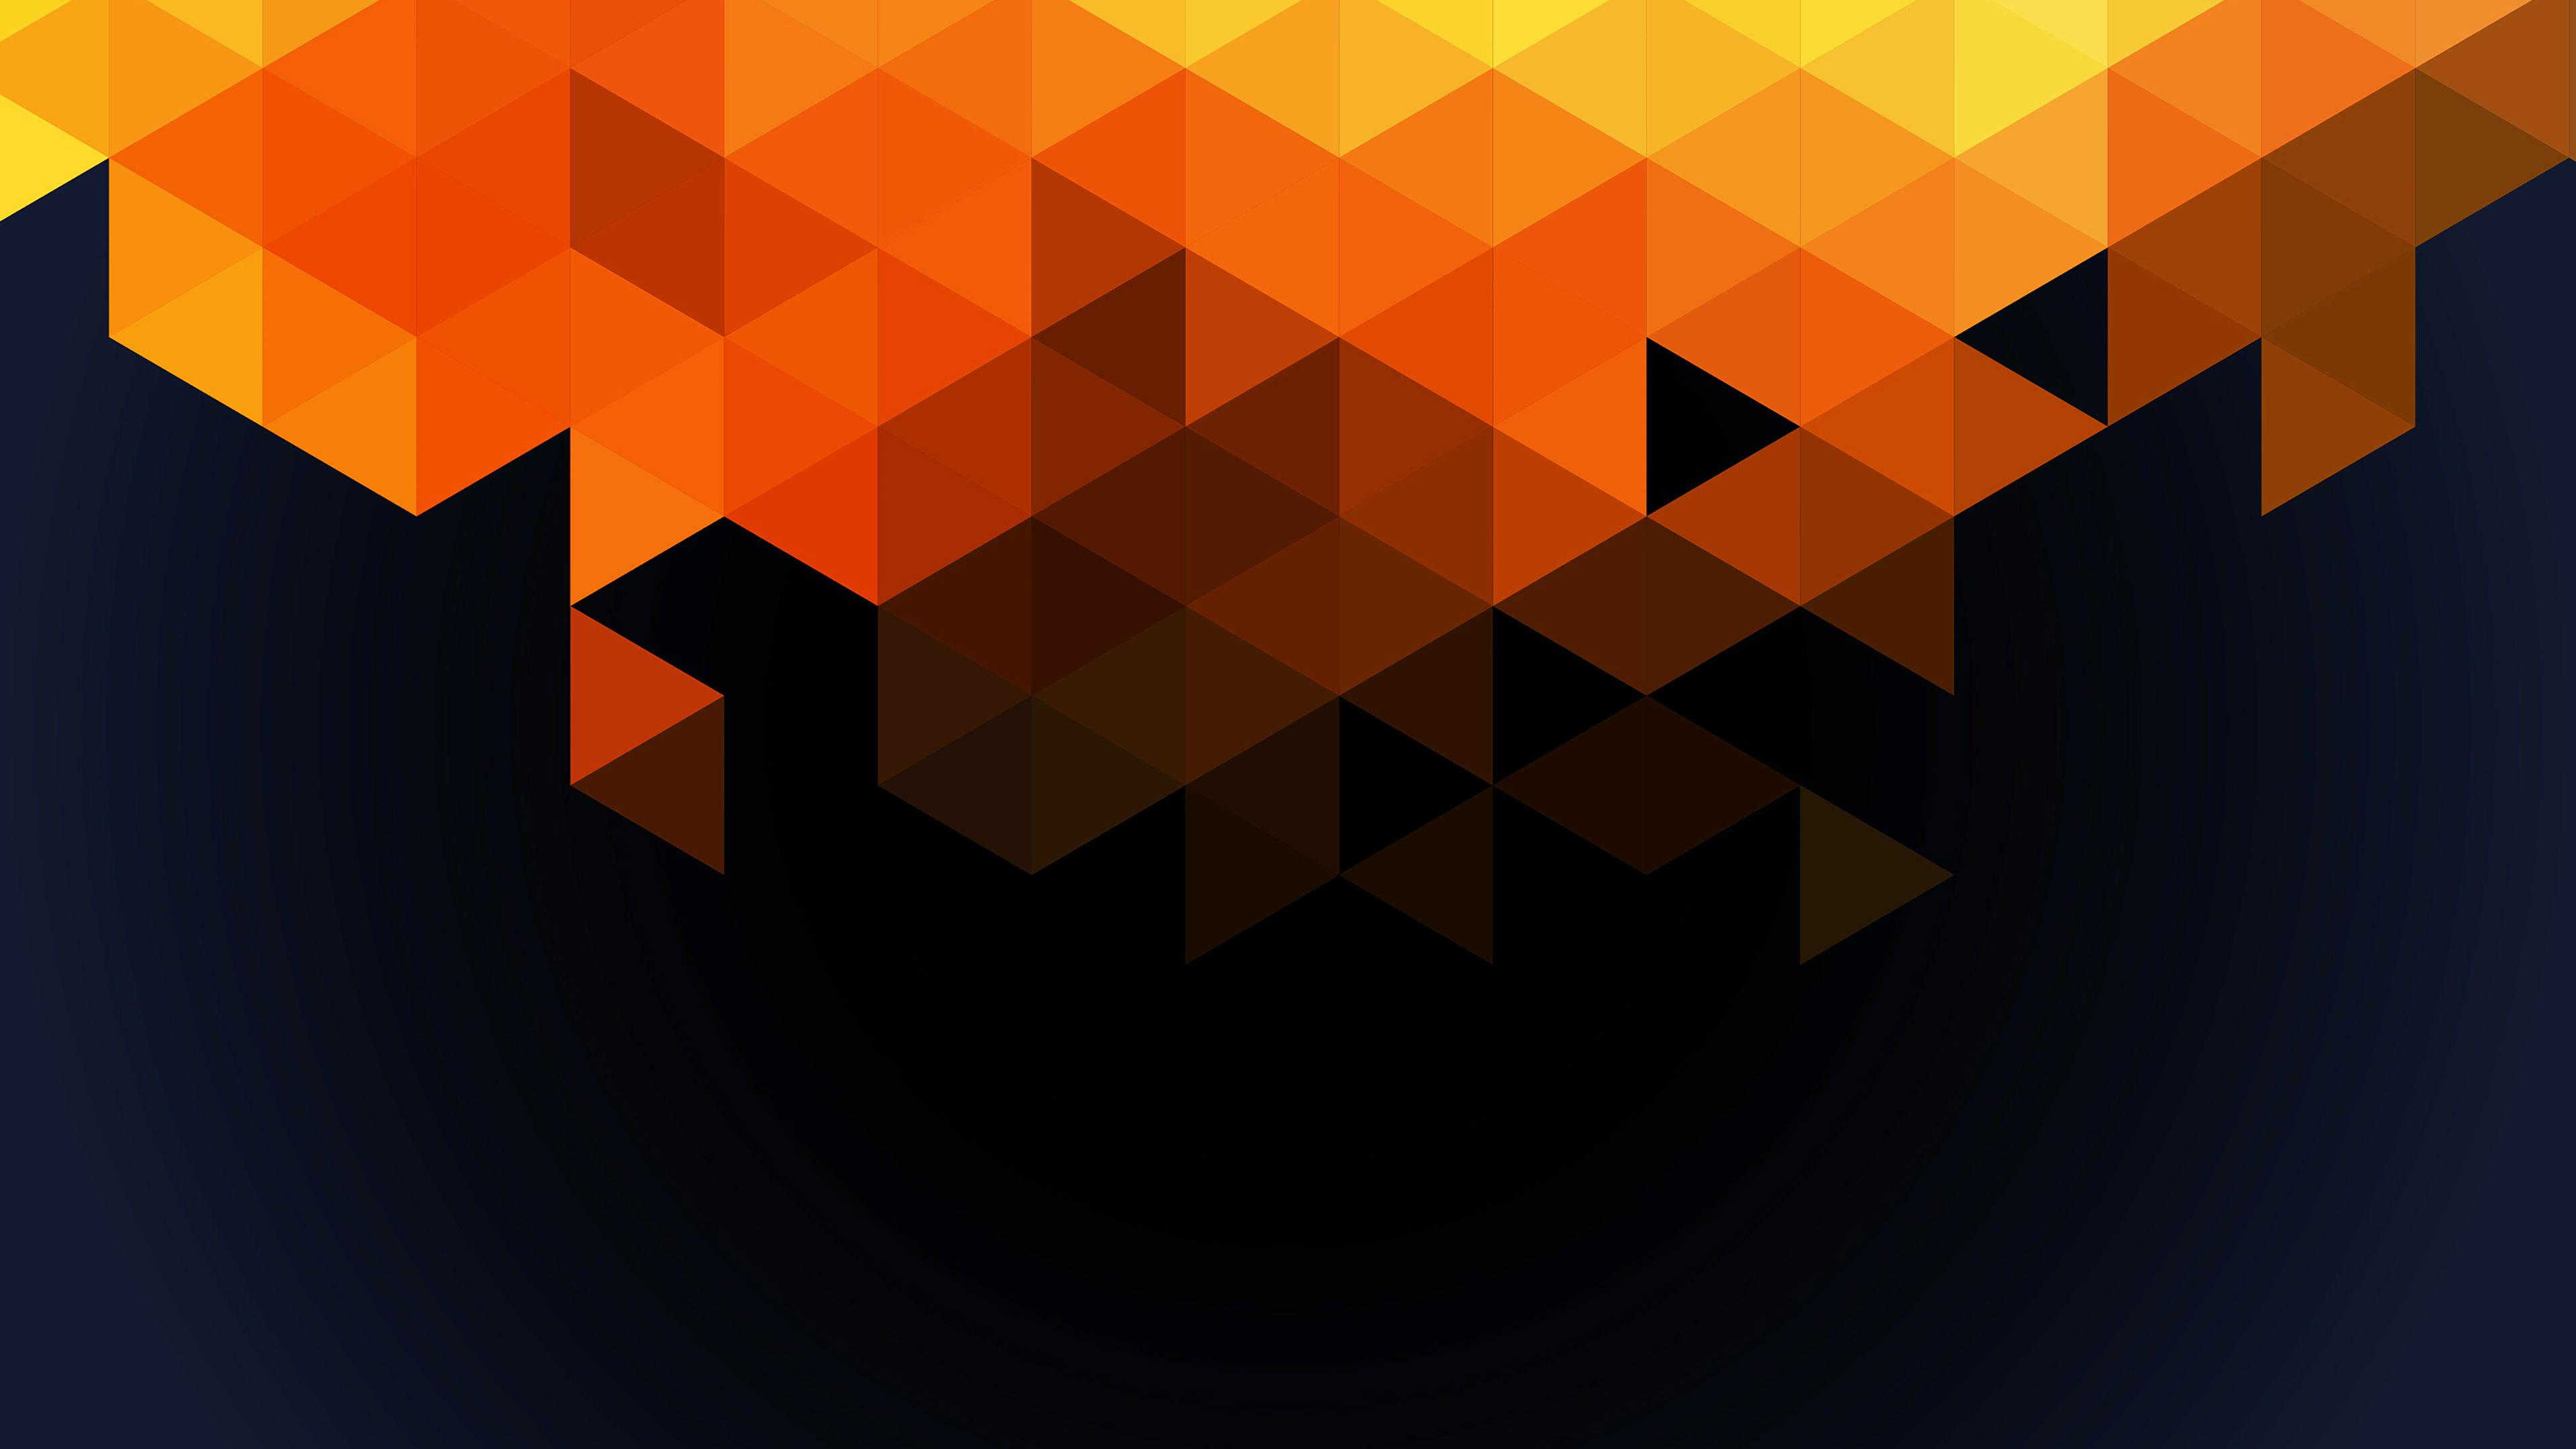 Orange 4k Wallpapers For Your Desktop Or Mobile Screen Free And Easy To Download